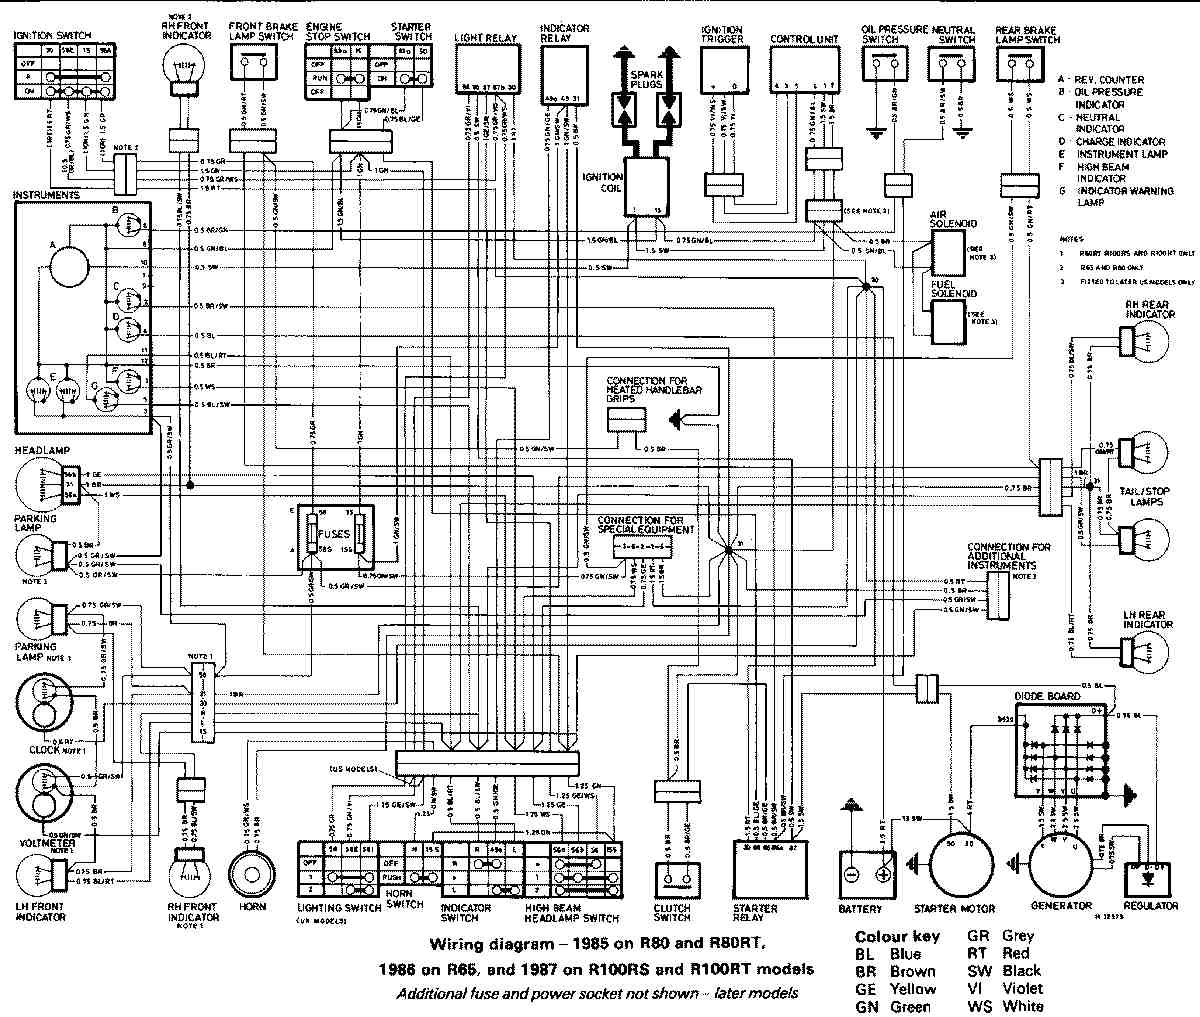 BMW R80, R80RT, R65, R100RS and R100RT 19851987 Motorcycle Wiring Diagram | All about Wiring